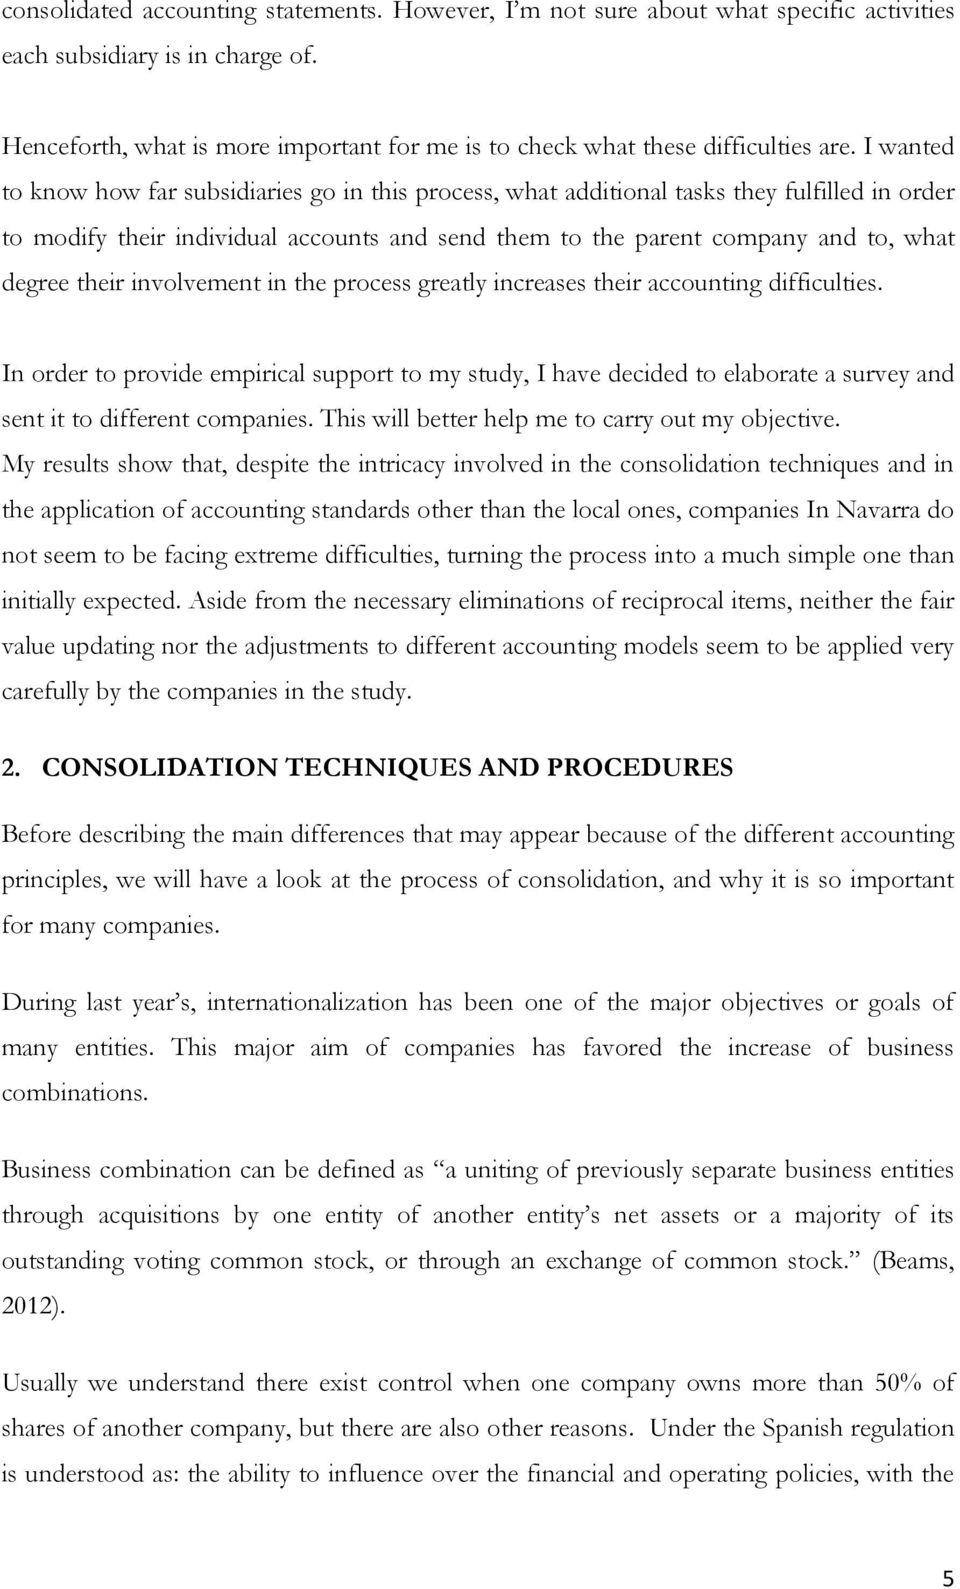 I wanted to know how far subsidiaries go in this process, what additional tasks they fulfilled in order to modify their individual accounts and send them to the parent company and to, what degree